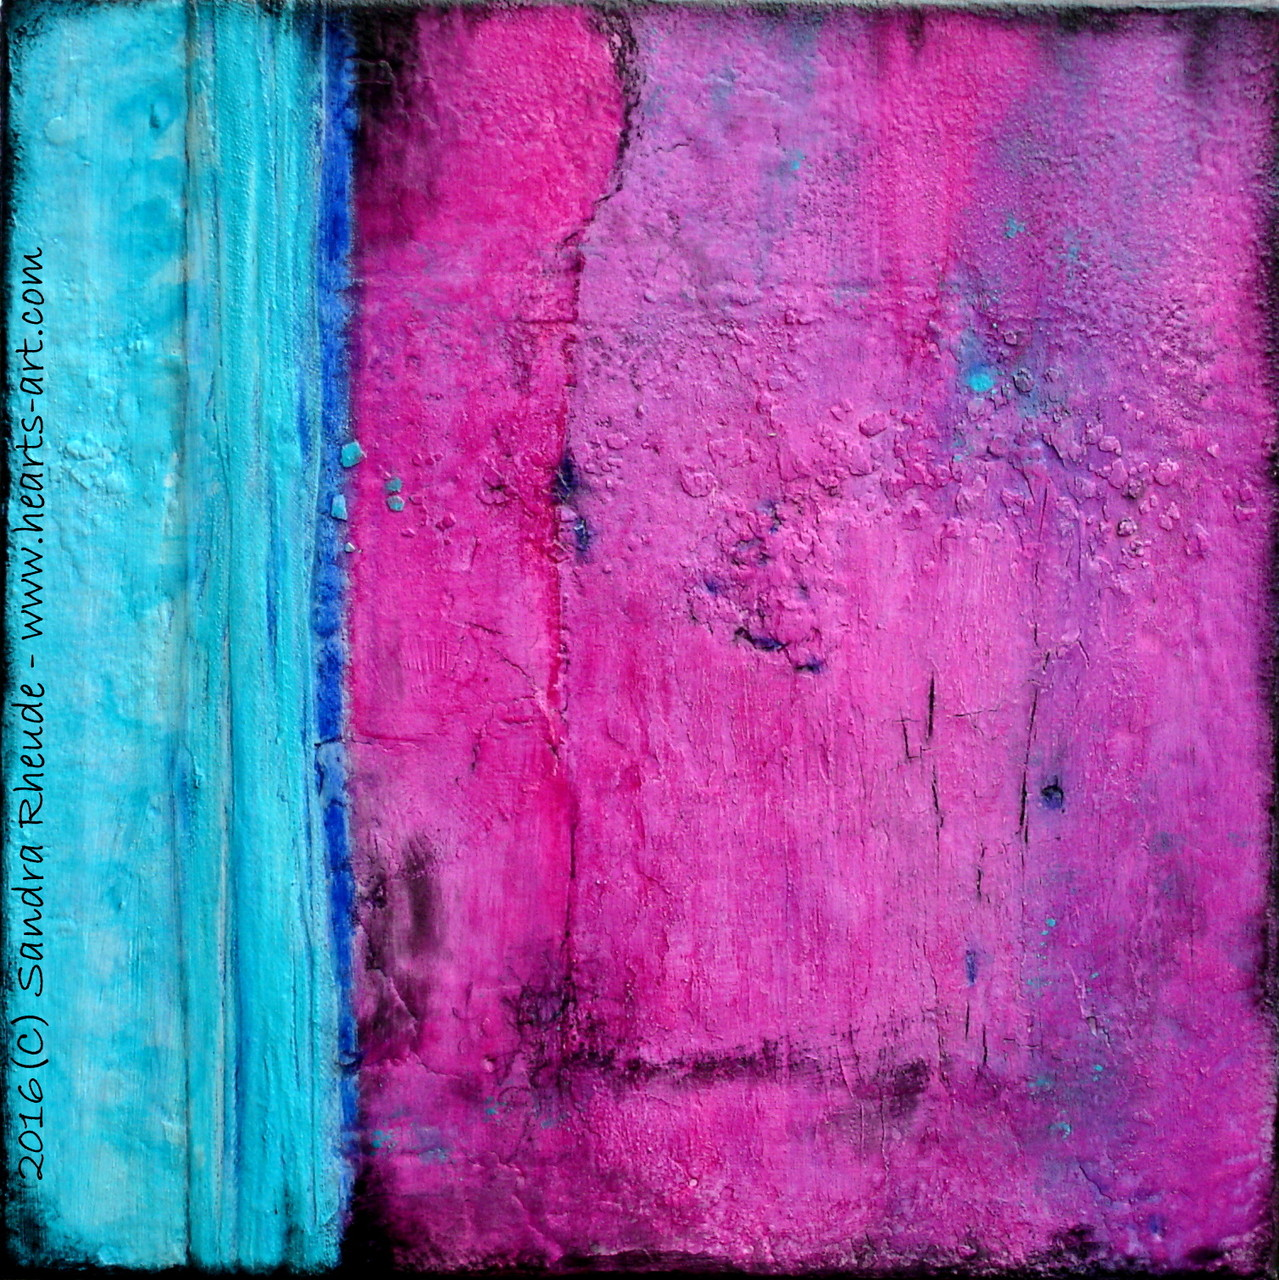 'Old Stories' - 2016/10 - Acryl/MixedMedia auf Leinwand - 40 x 40 cm - € 190